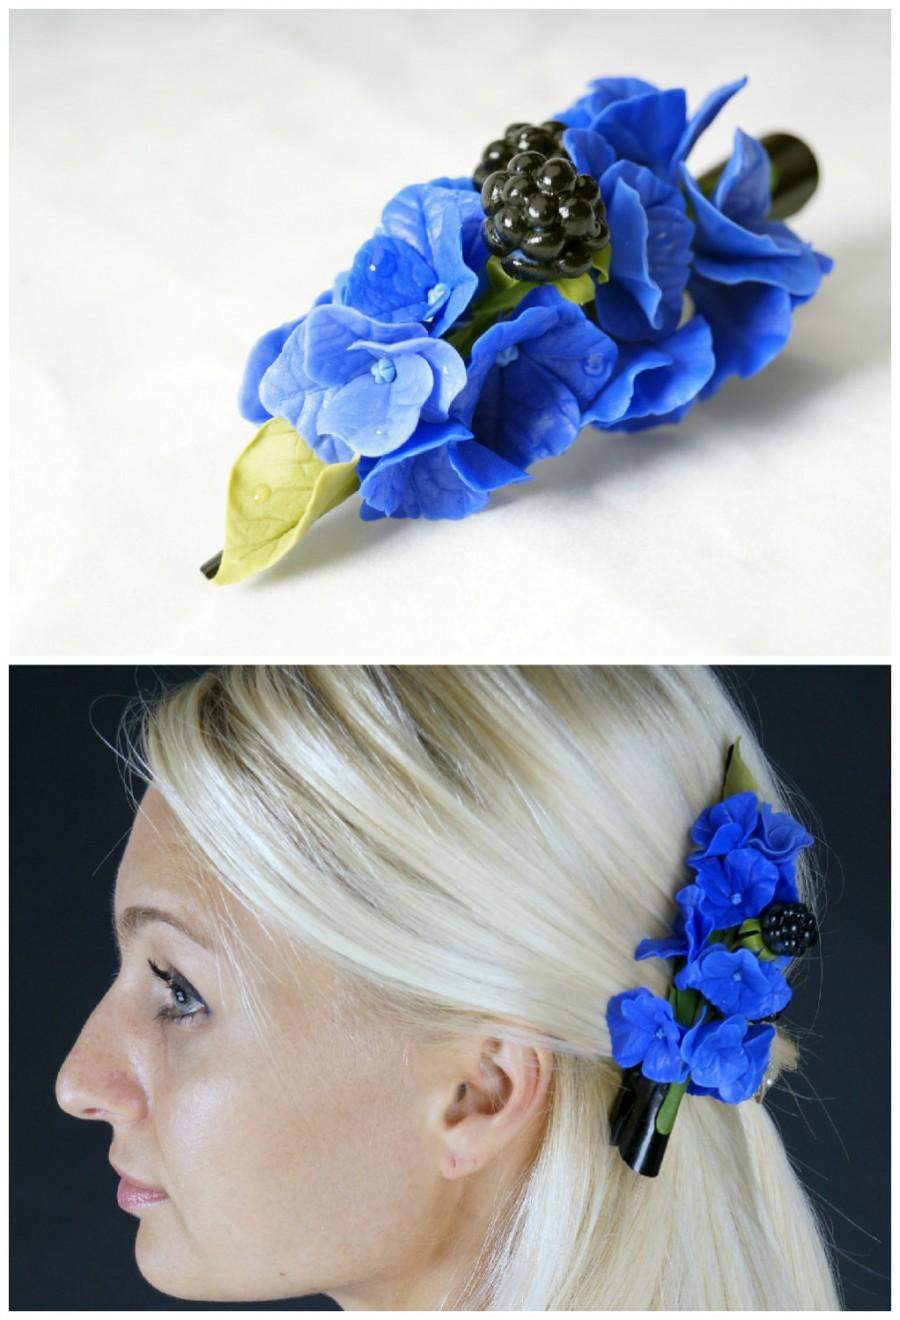 Find great deals on eBay for blue flower hair clip. Shop with confidence.